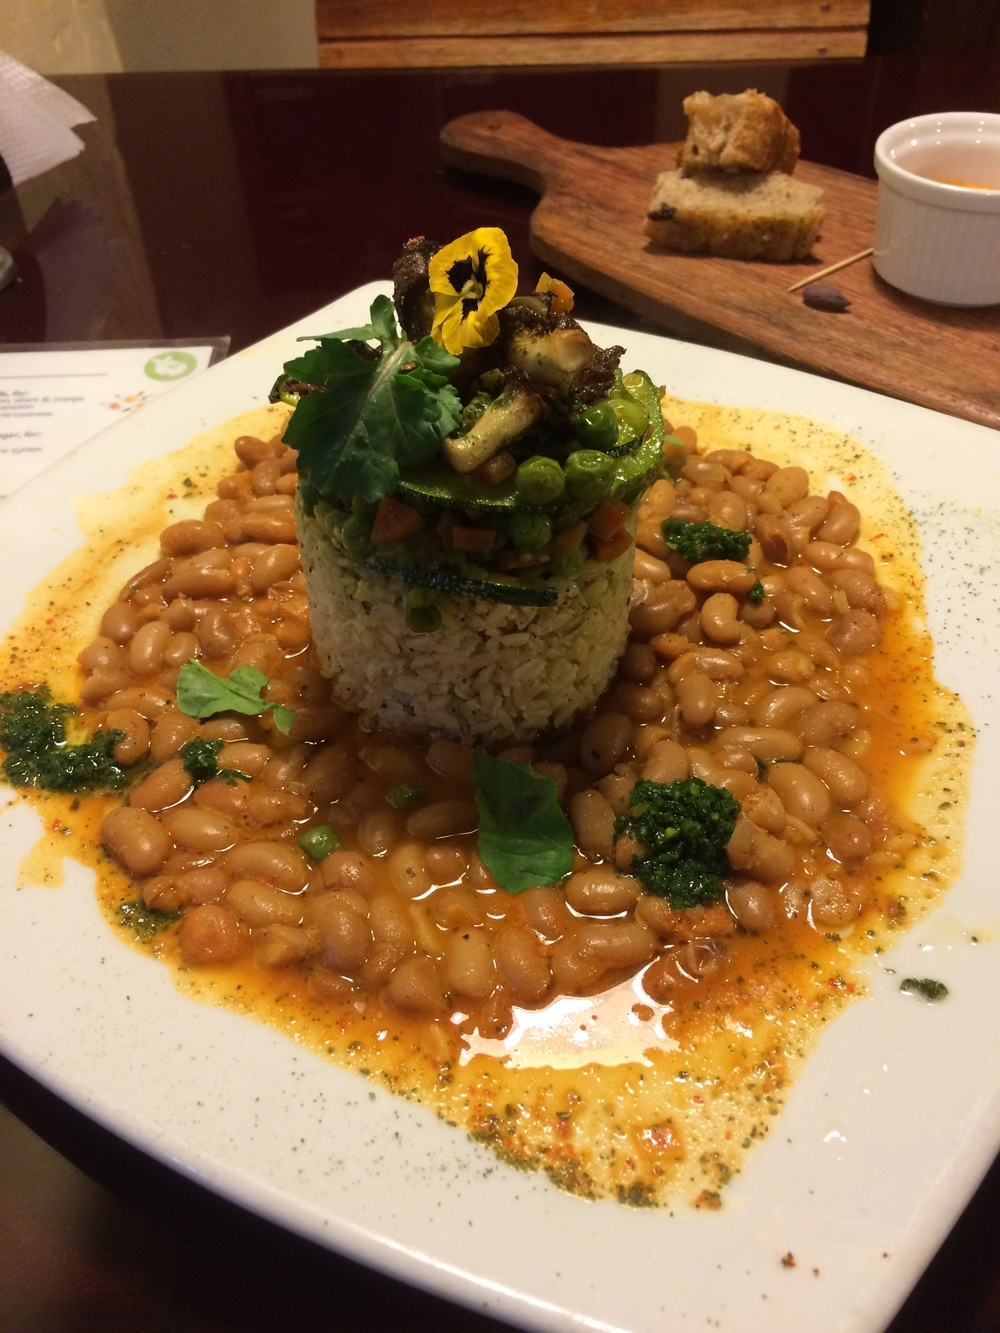 The most flavorful, spicy rice and bean dish from Green Point.